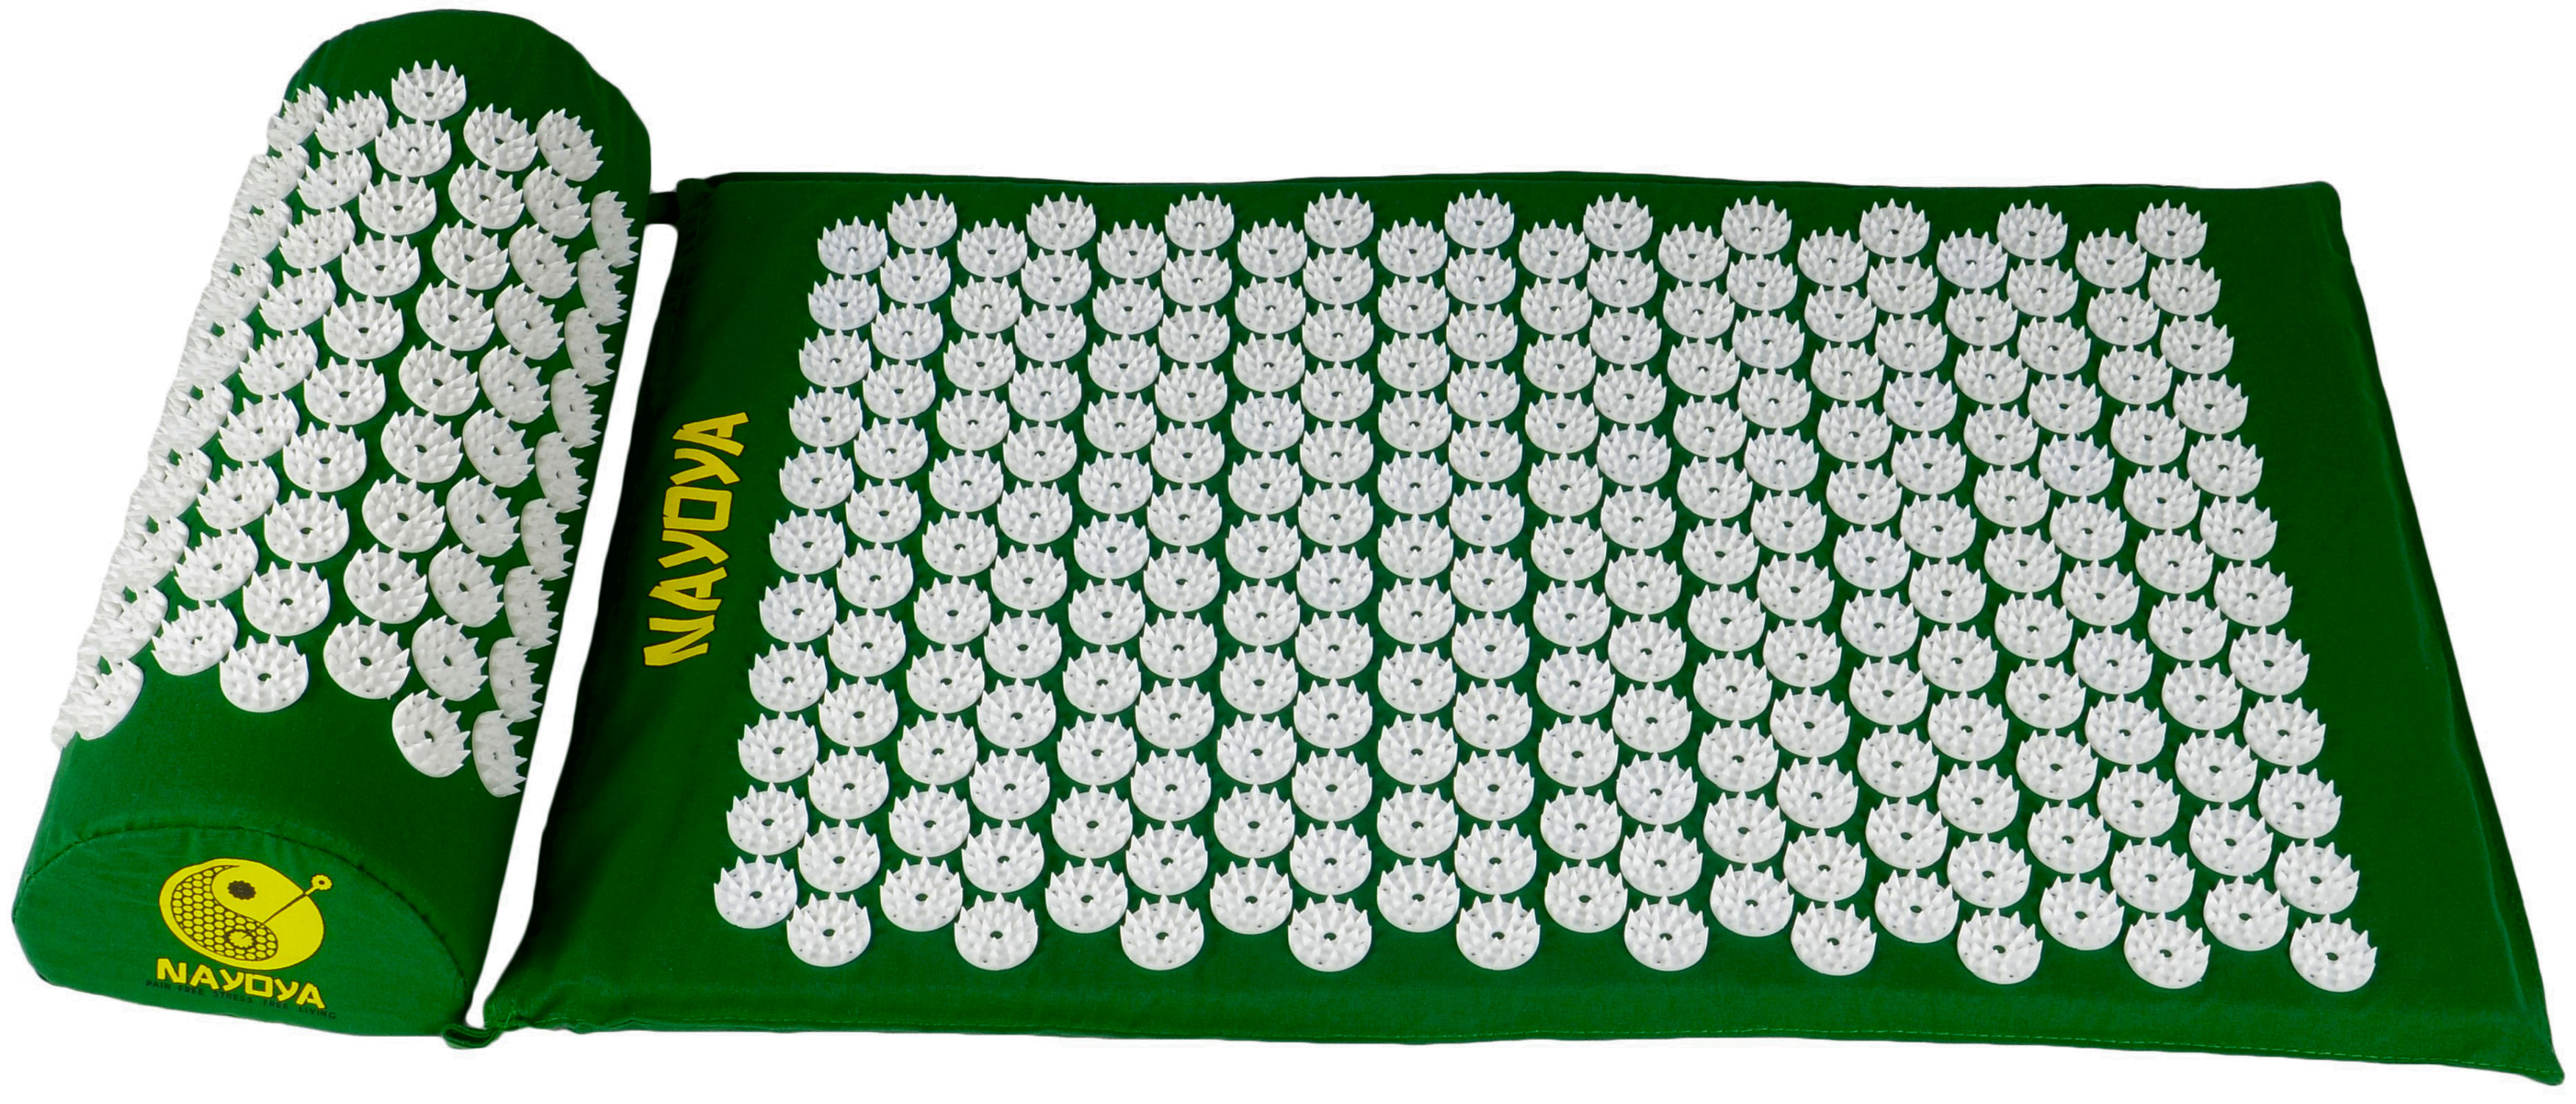 Nayoya S Acupressure Mat And Neck Pillow Provides